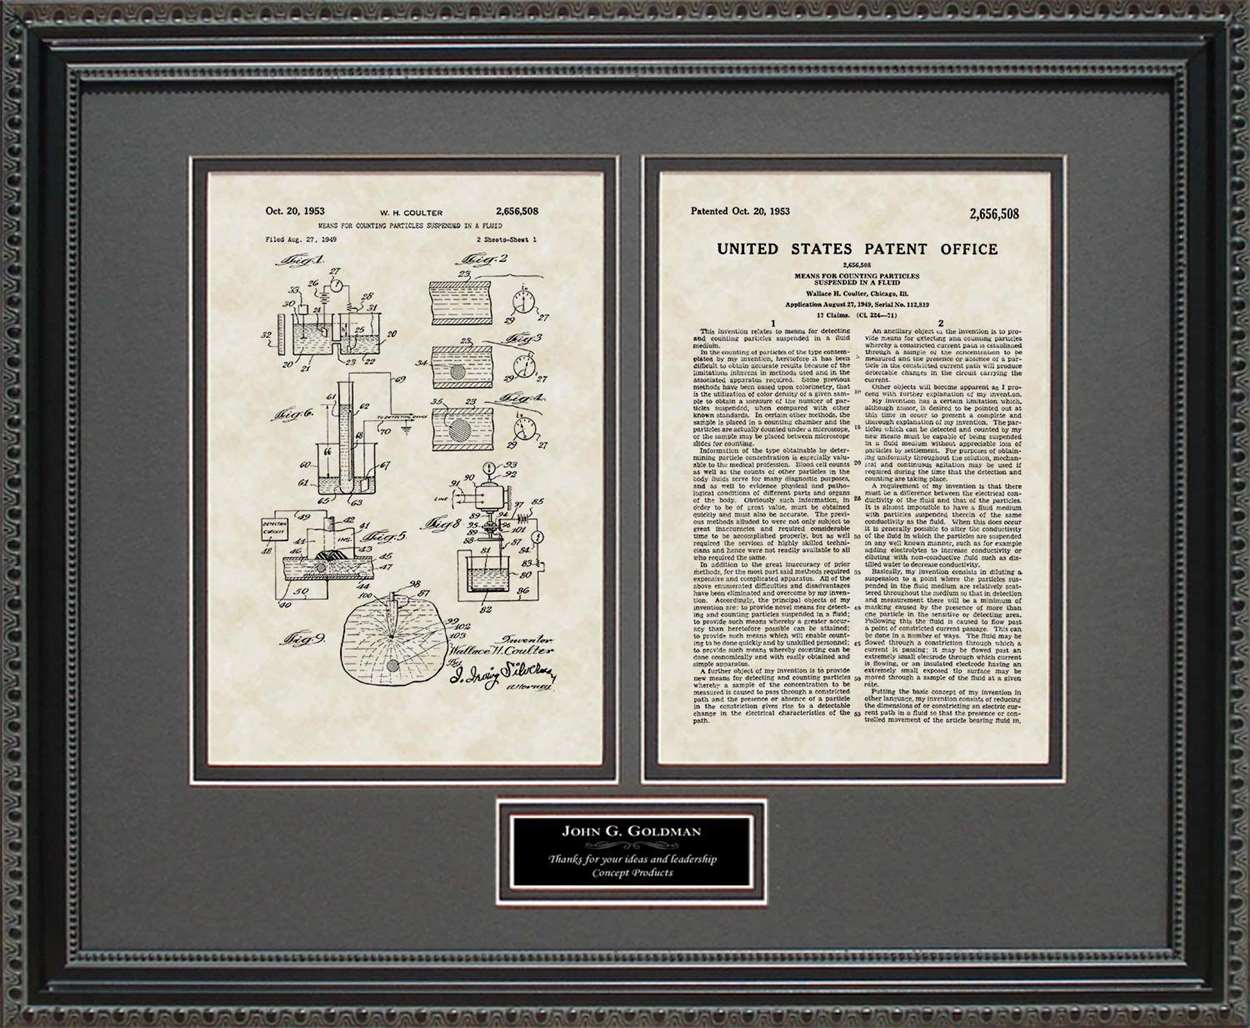 Personalized Coulter Principle Patent, Art & Copy, Coulter, 1953